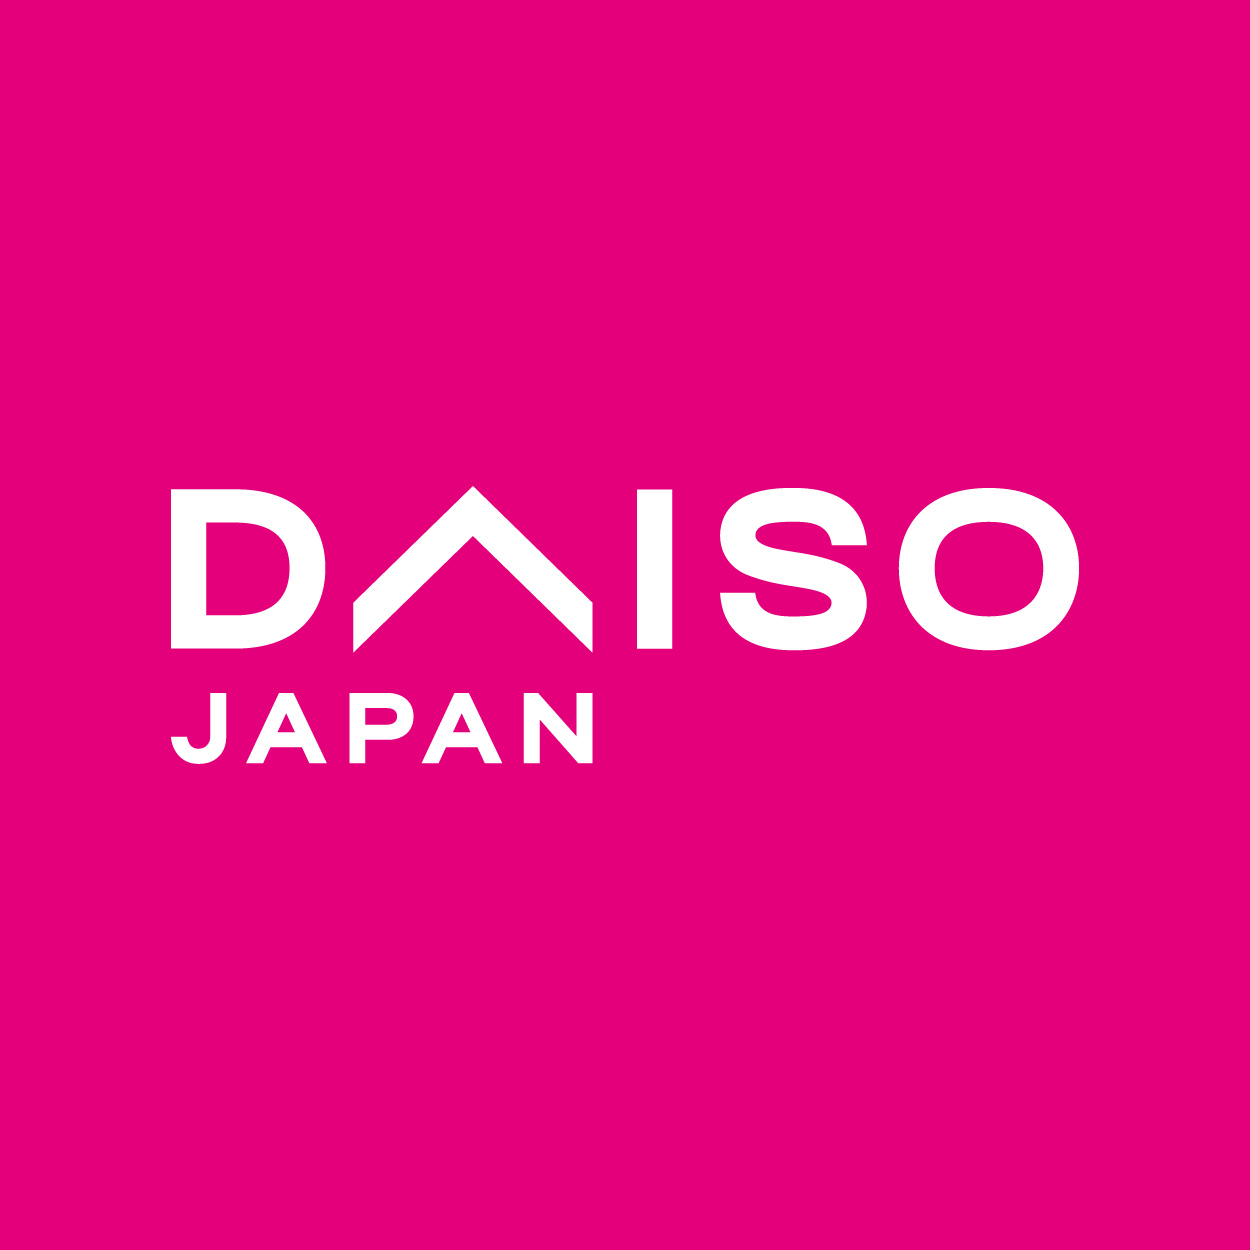 <p>DAISO is a $2 mega store established in Japan in 1977. We are Japan's No. 1 ranking living ware supplier, with 2570 stores across the country and 550 stores in 24 nations worldwide.</p><p><br></p><p>There are now 16 Daiso stores all over Singapore. Besides the flagship store in IMM. There are also outlets in Plaza Singapura, Sembawang Shopping Centre, ION Orchard, Tampines 1, Chinatown Point, City Square Mall, Parkway Parade, Singapore Sportshub (Kallang Wave), Eastpoint Mall, Jcube, Waterway Point, Changi City Point, Novena Square 2, 100AM &amp; Singpost Centre.</p><p>With over 90,000 different products in our inventory and a further 1,000 new products being developed each month, we provide the most amazing variety and value for all your needs.</p>